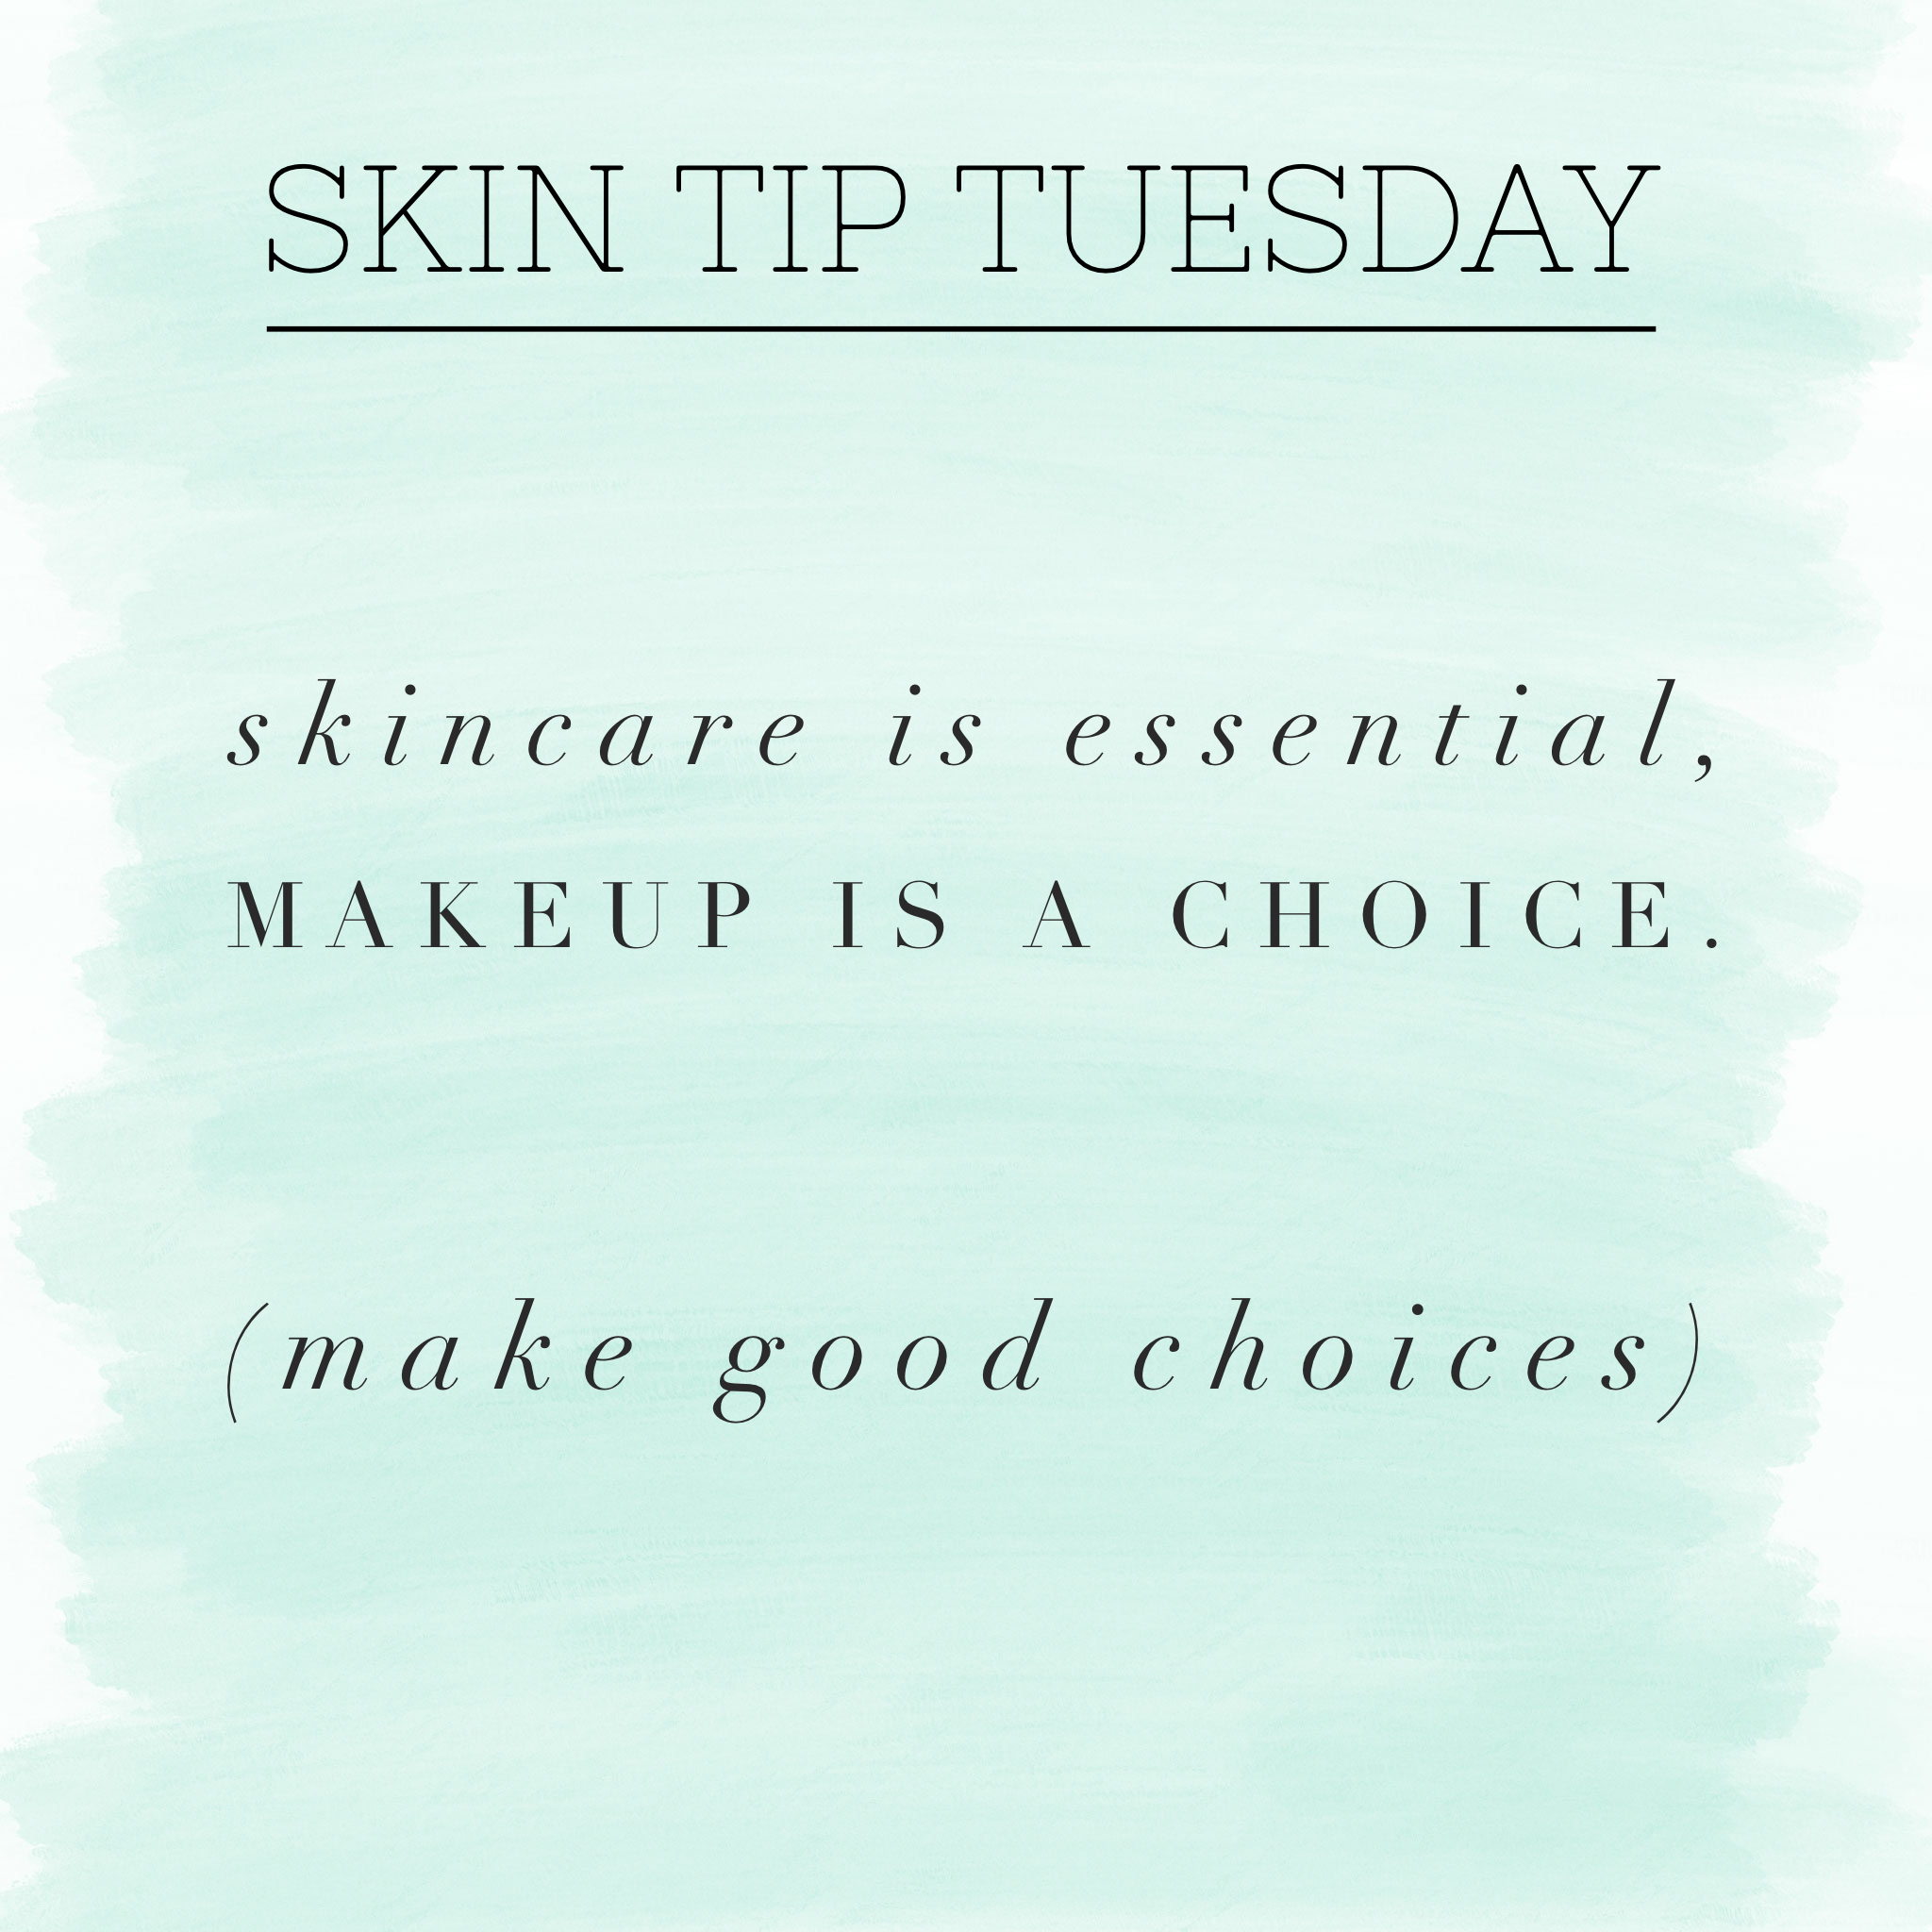 R F Solution Tool Rodan Fields Rodan And Fields Skin Facts Skincare Quotes